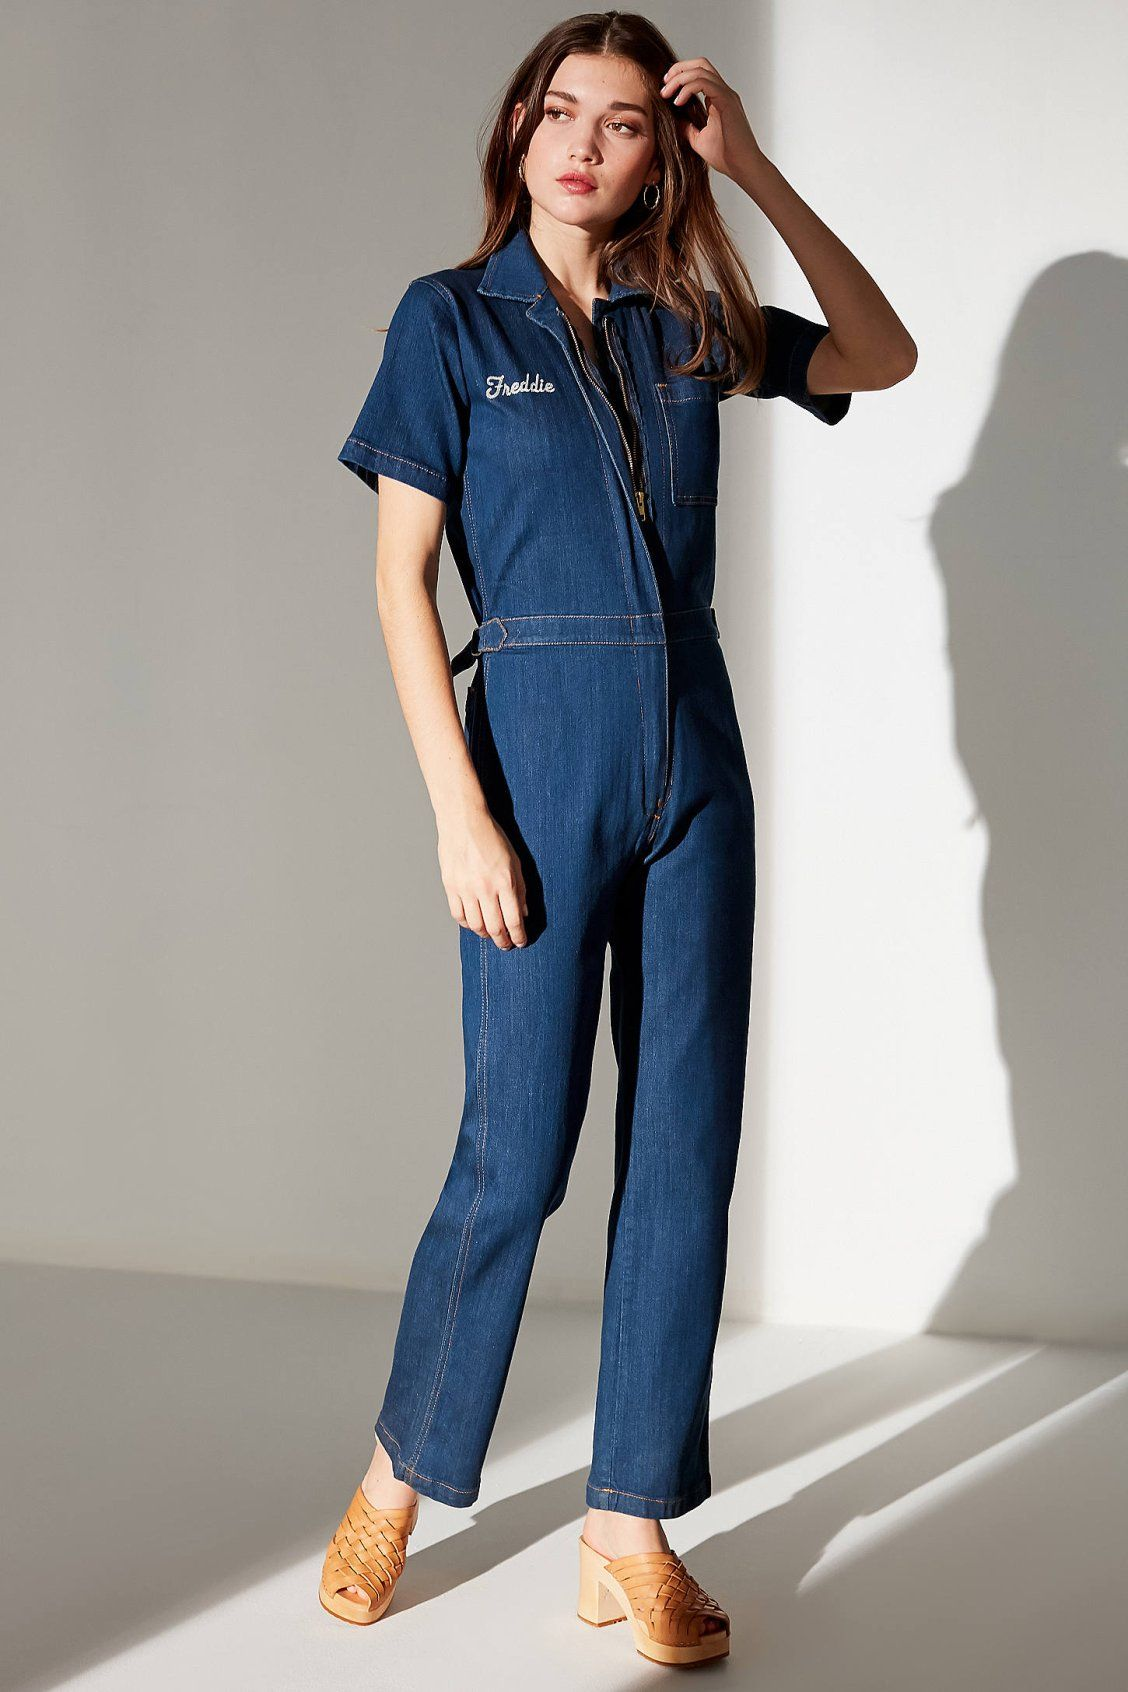 Awesome Jumpsuits and Dungarees for 2019 2